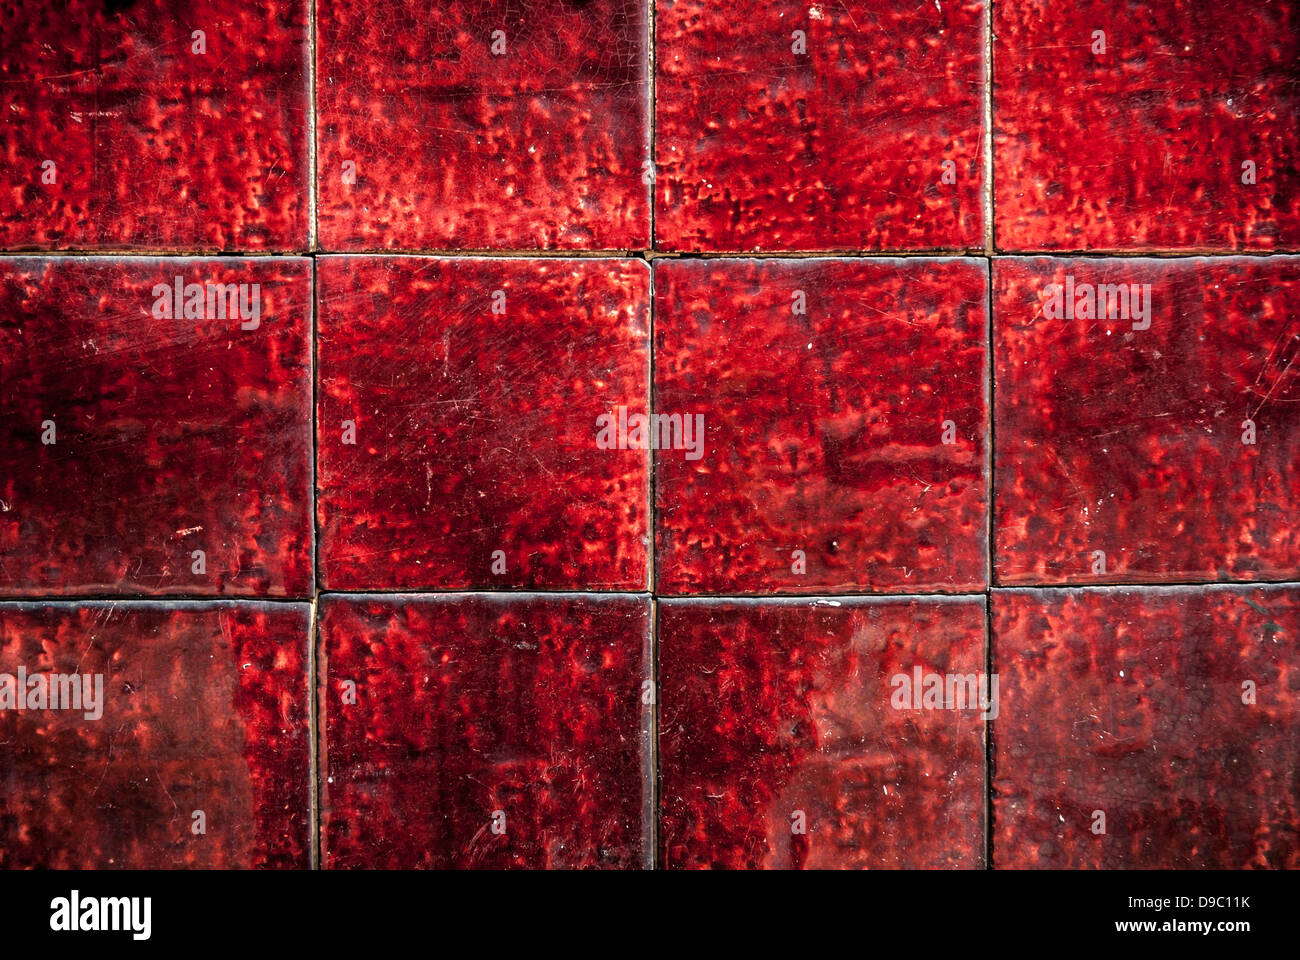 Red glazed old victorian ceramic tiles background stock photo red glazed old victorian ceramic tiles background dailygadgetfo Image collections